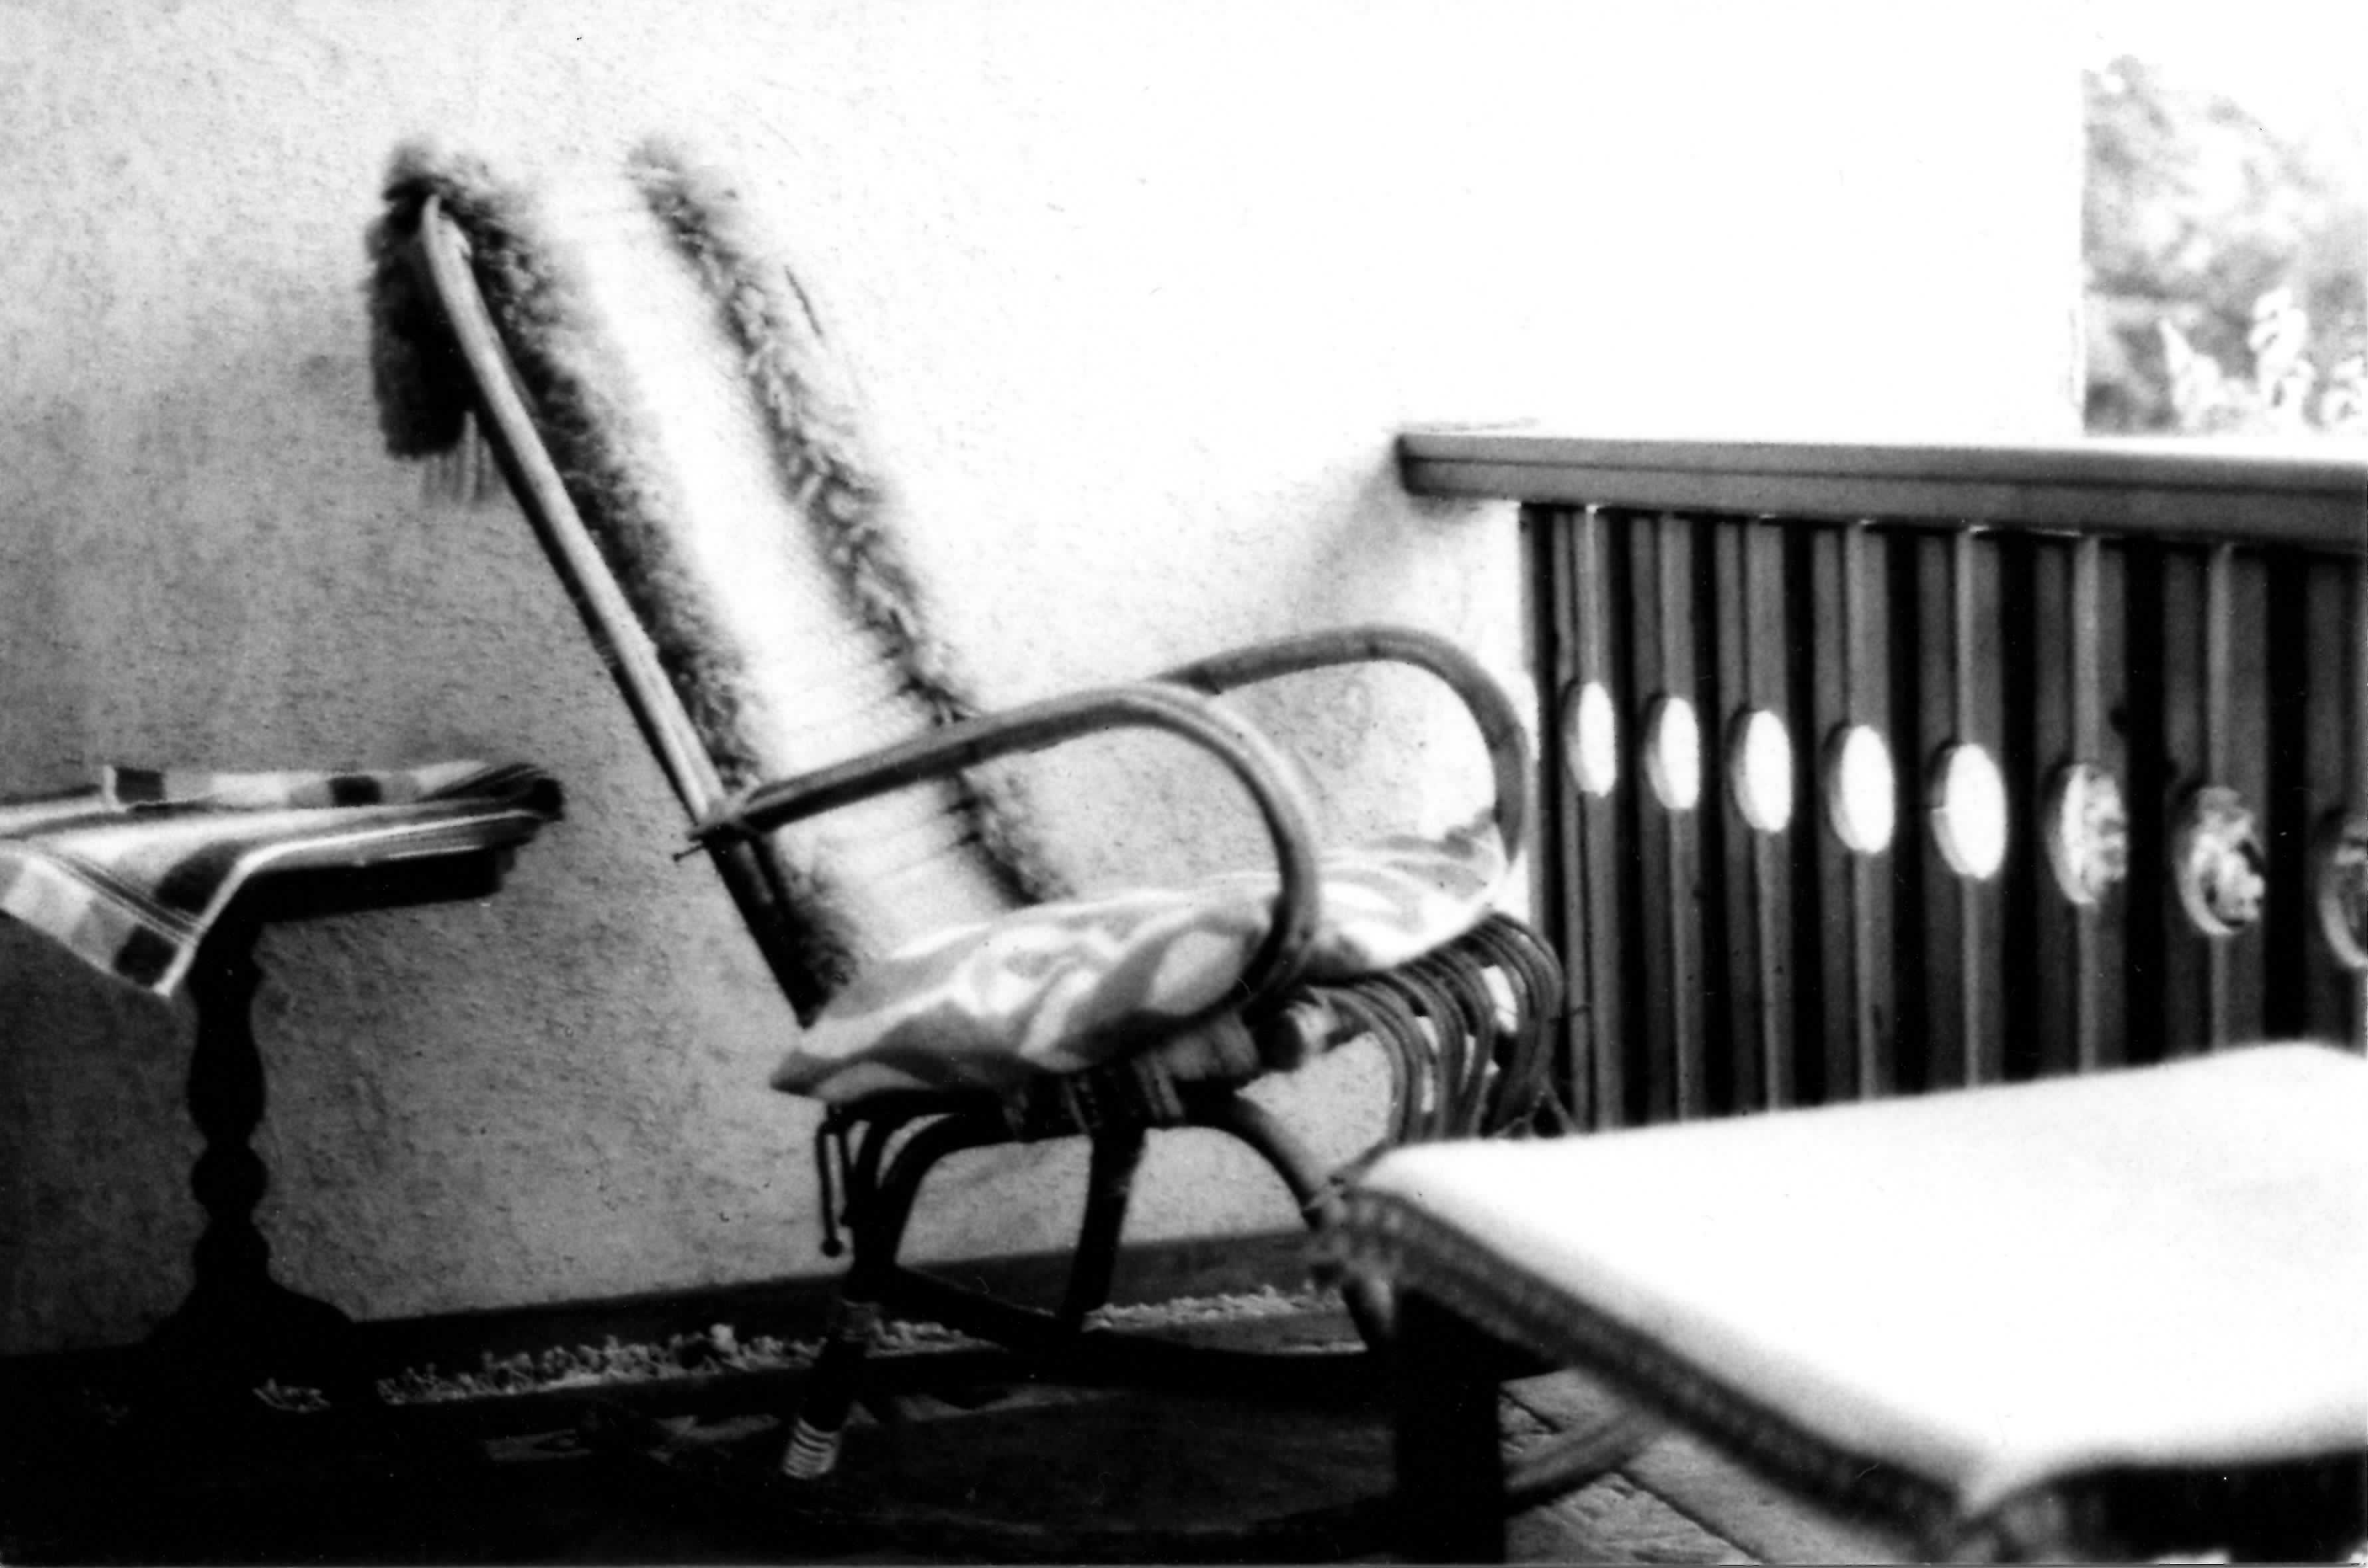 Old Rocking Chair by xXTheShadowDancerXx on DeviantArt